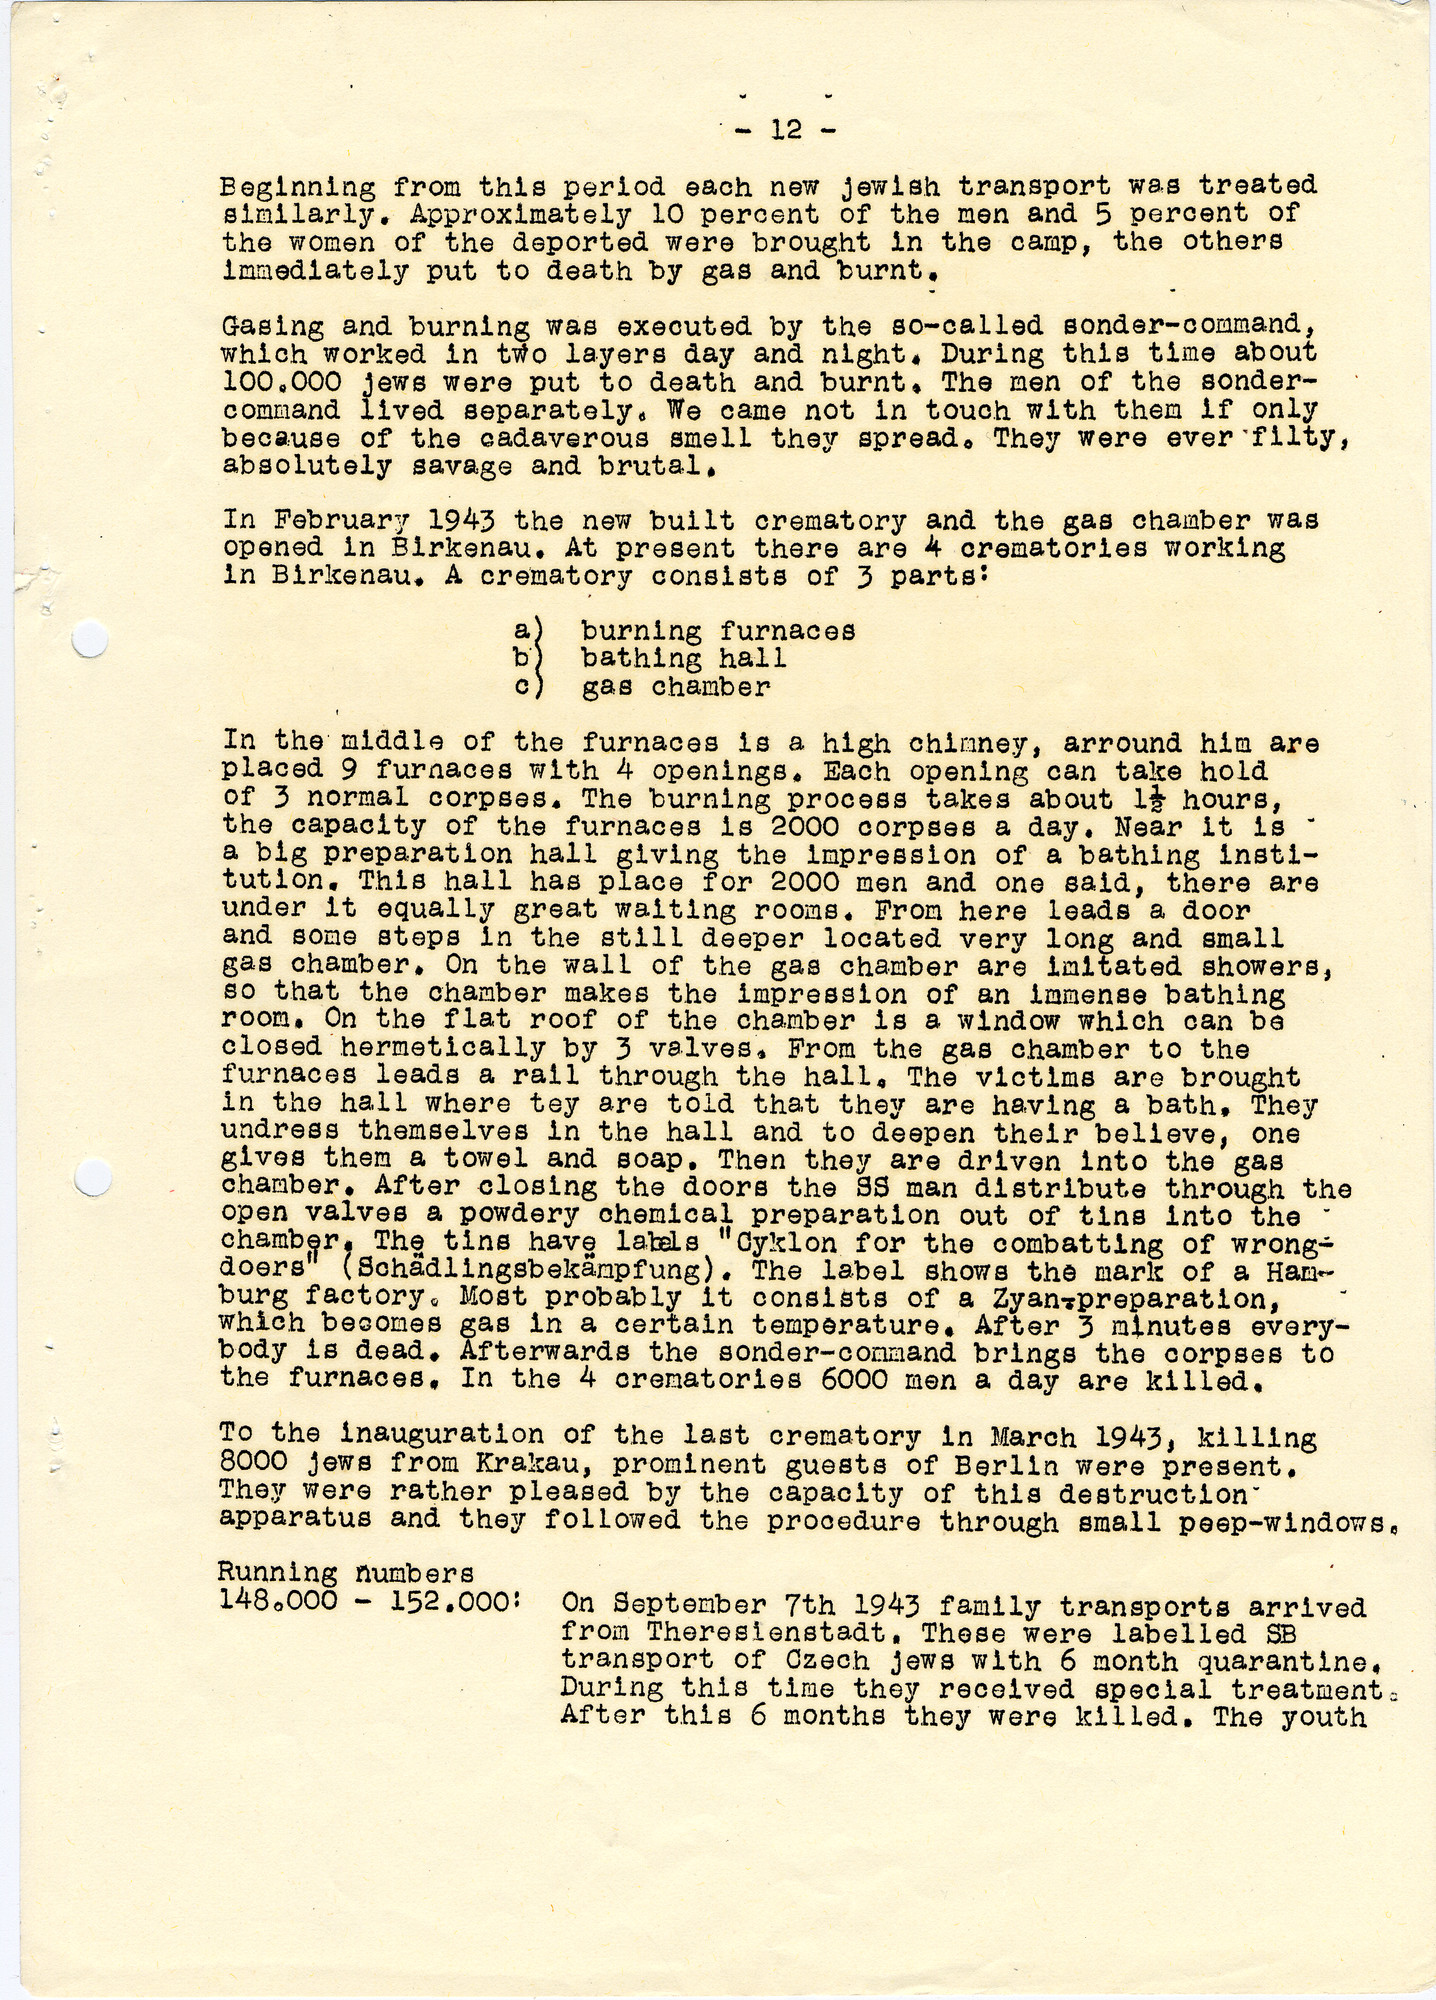 Abridged version of the Auschwitz Protocol sent .by Miklos Kraus in Budapest to George Mantello in Switzerland.  The document was translated into English by students hired by George Mandel-Mantello.